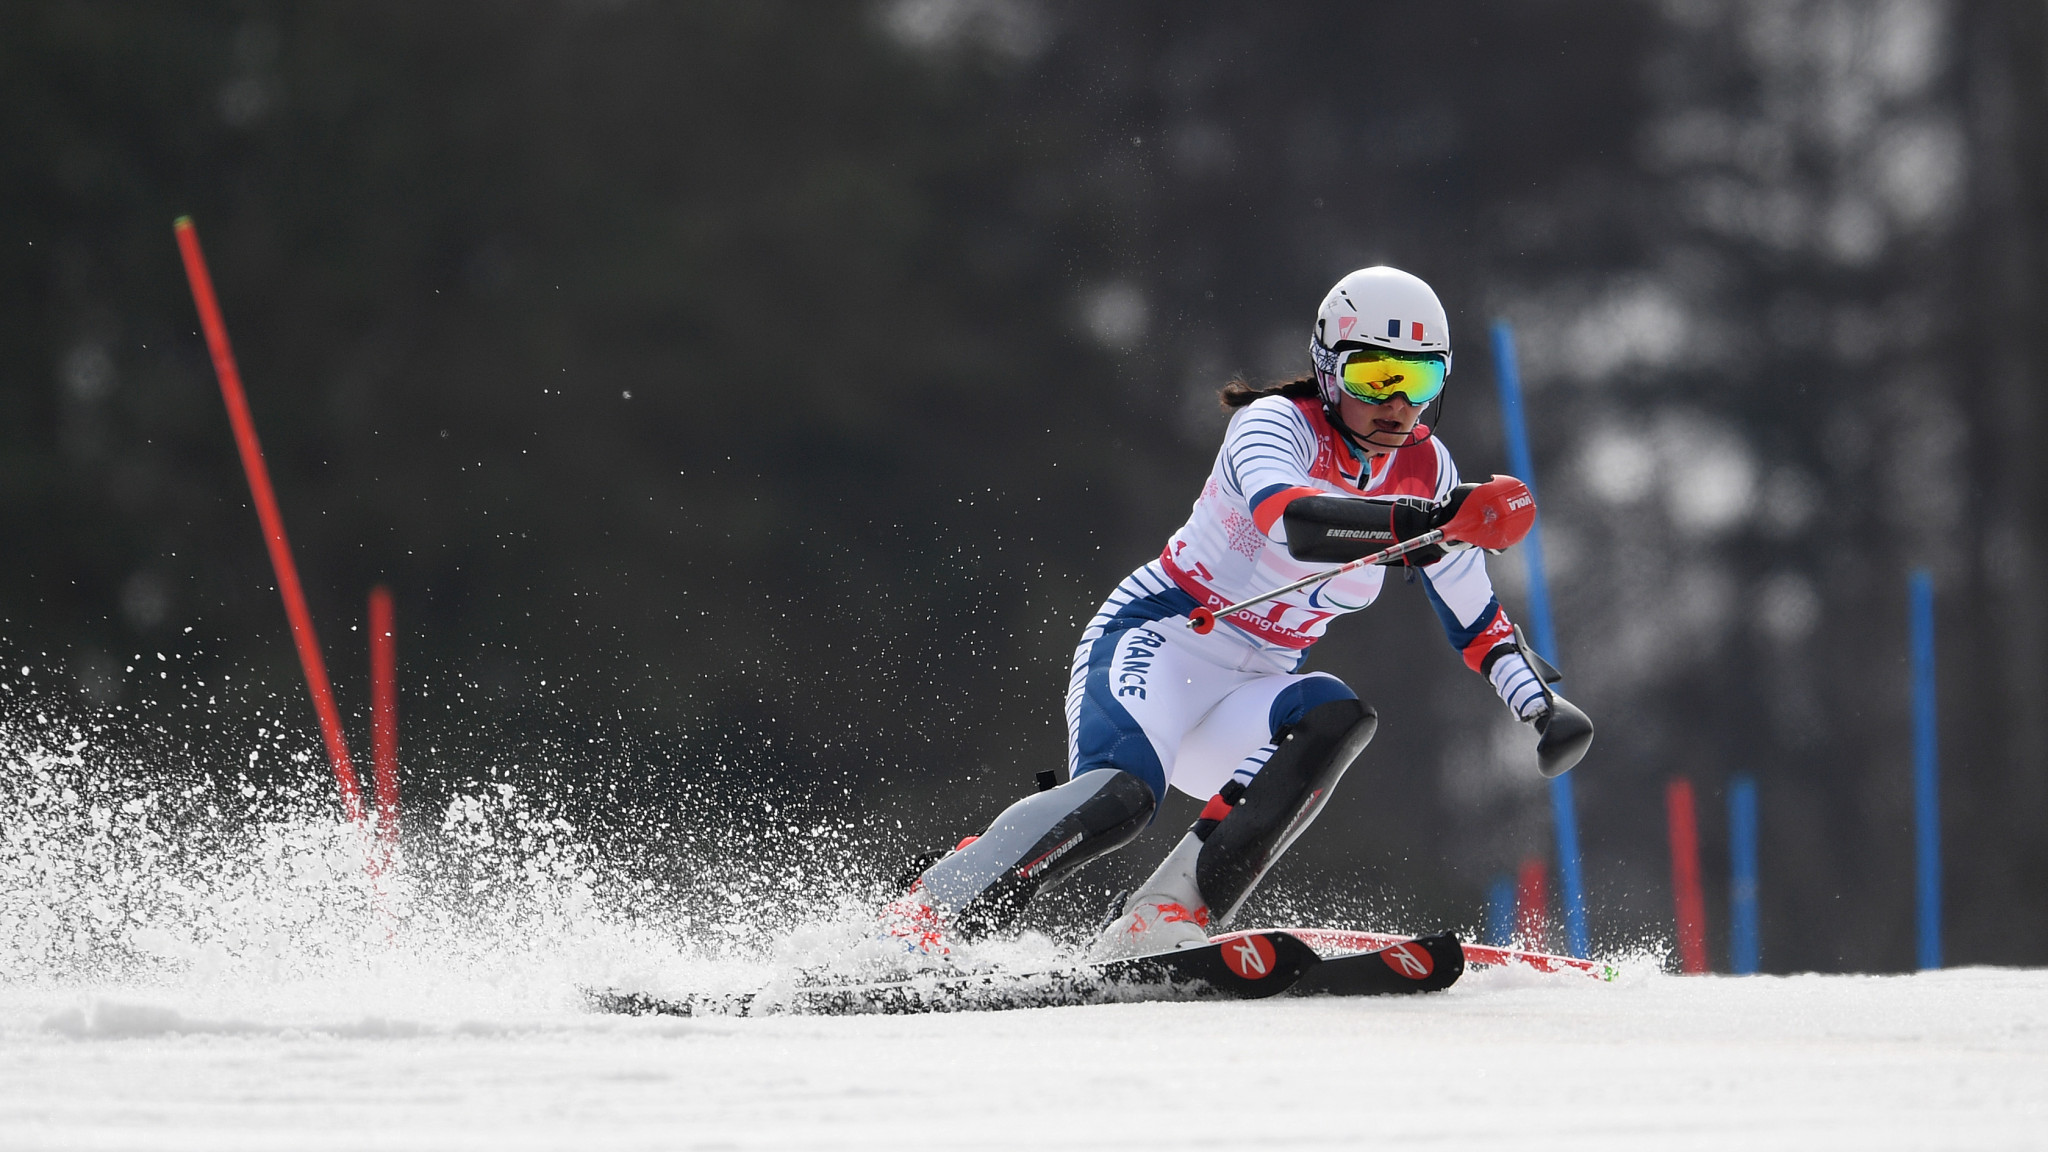 Slovenia and Italy ready for 2019 World Para Alpine Skiing Championships